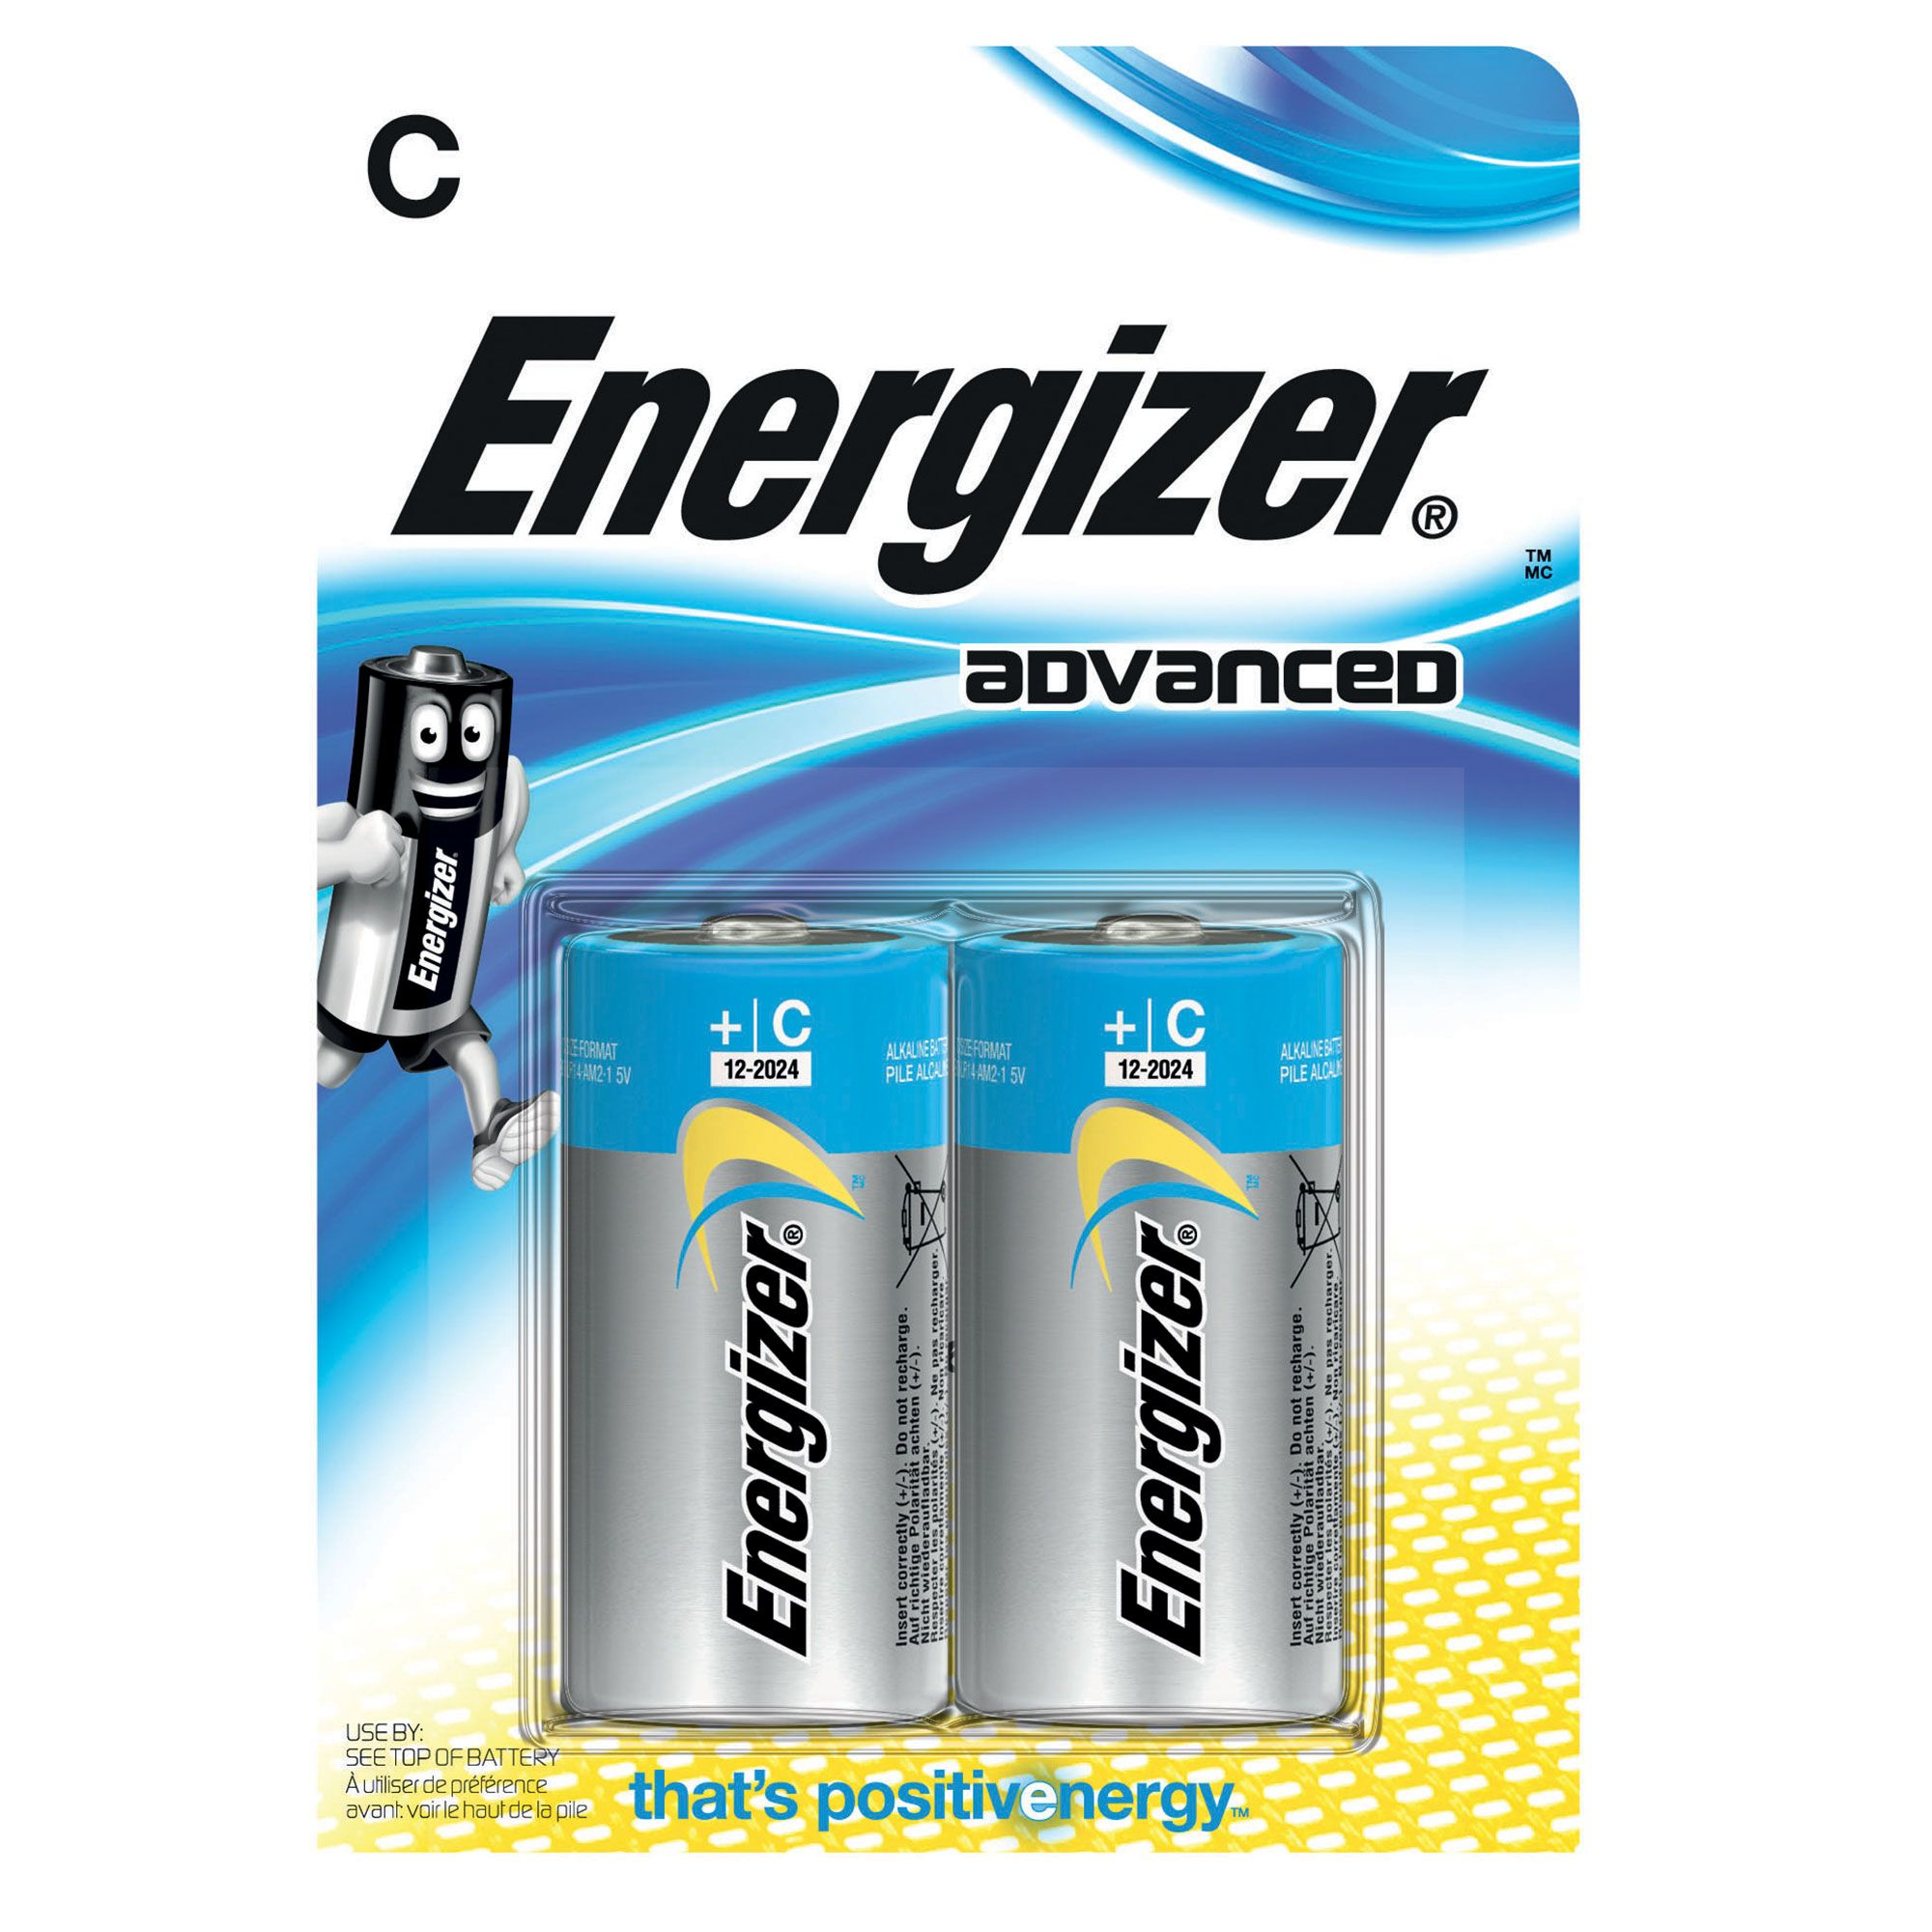 Image of Energizer Advanced C Batteries 2 Pack